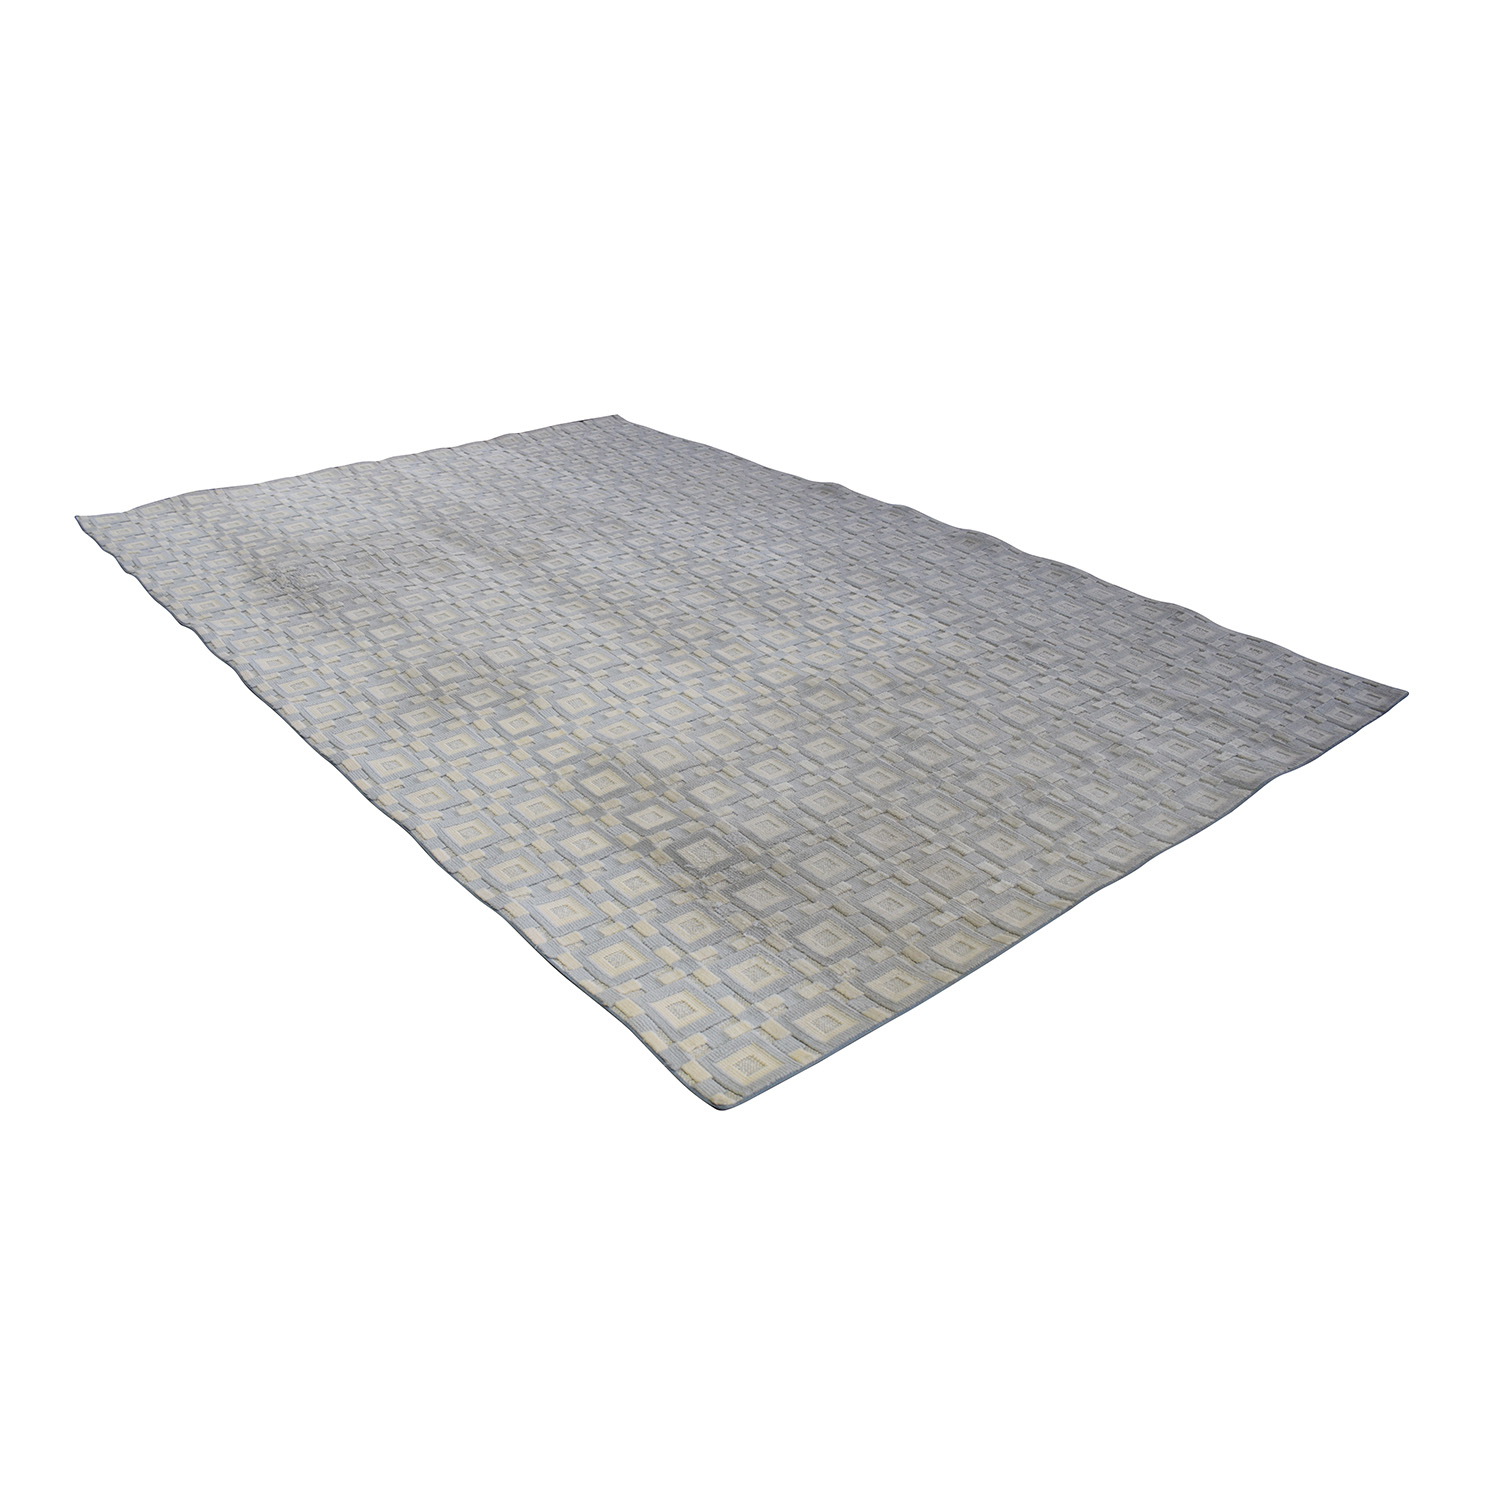 shop Gray and White 9x12 Natural Fiber Rug